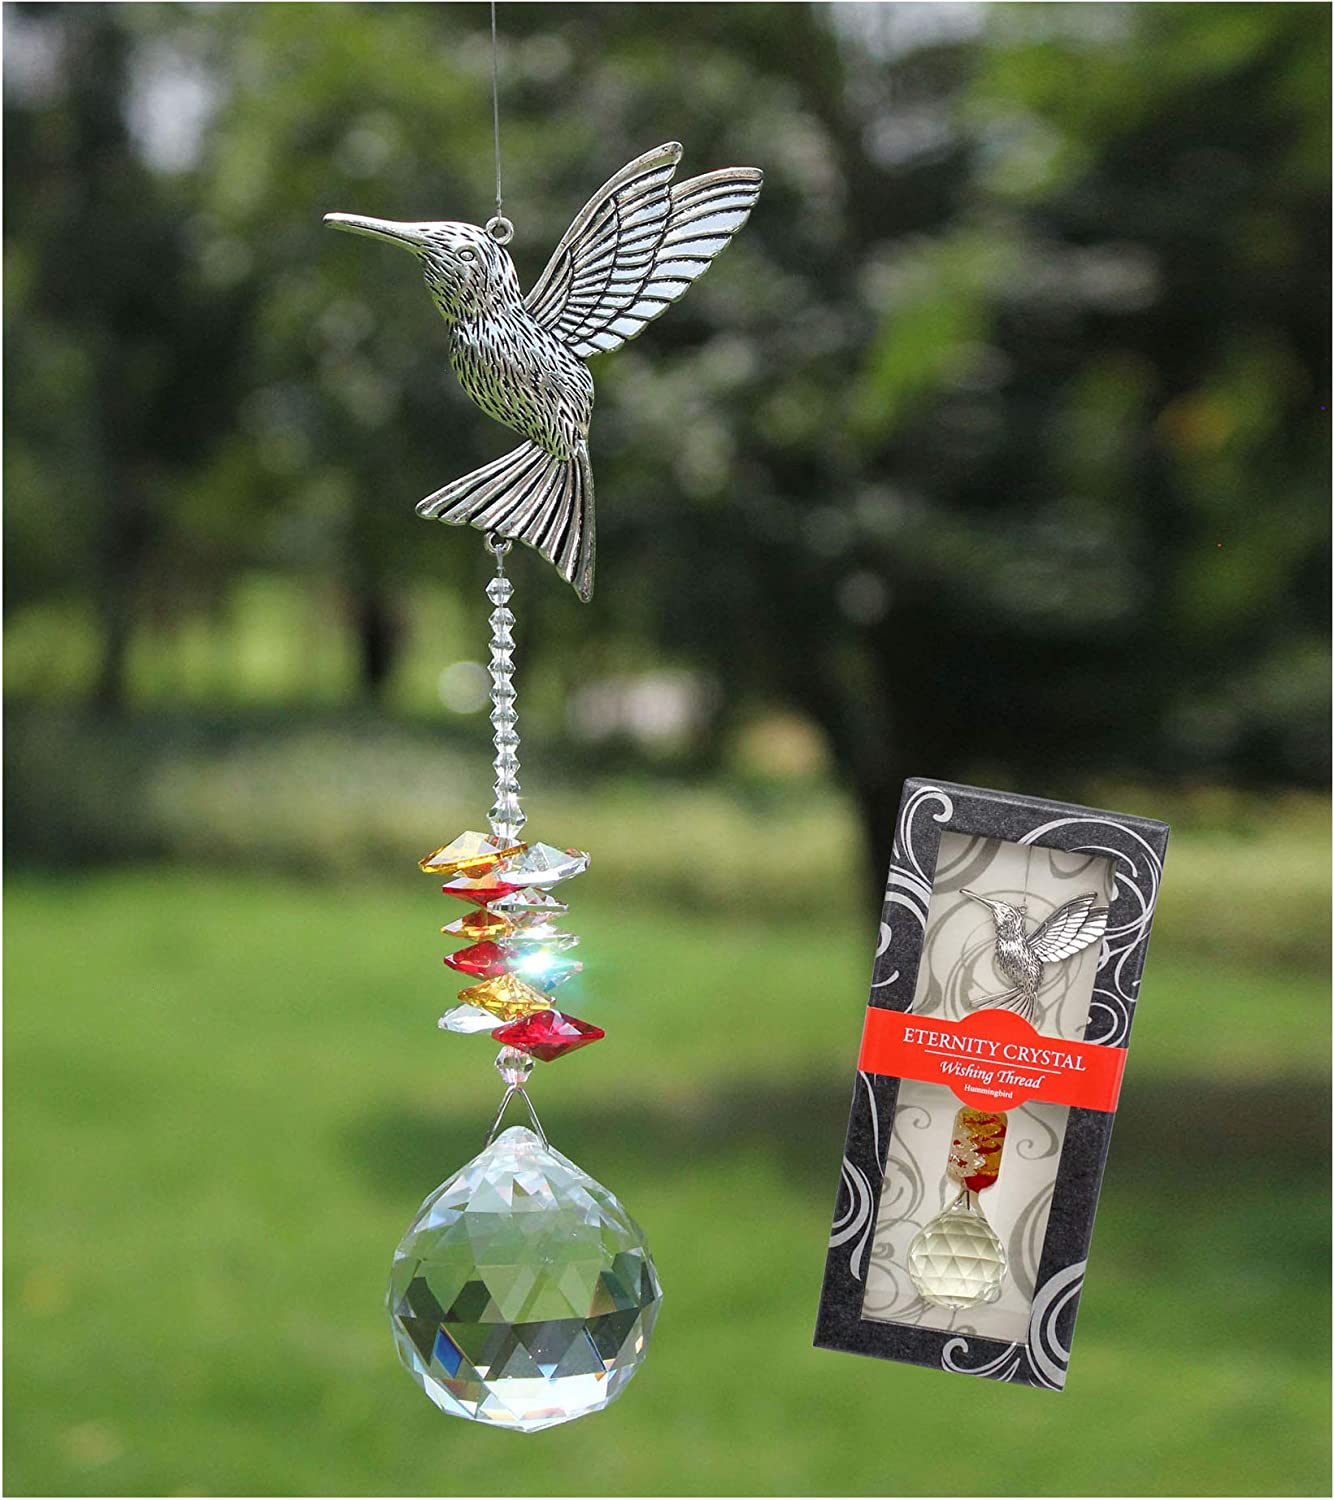 Crystal Garden Suncatcher Hanging Crystals Ornament for Window Rainbow Maker Prisms Home Decor Gift Boxed Sun Catcher Gift Idea for Mom Friends Grandma, Hummingbird